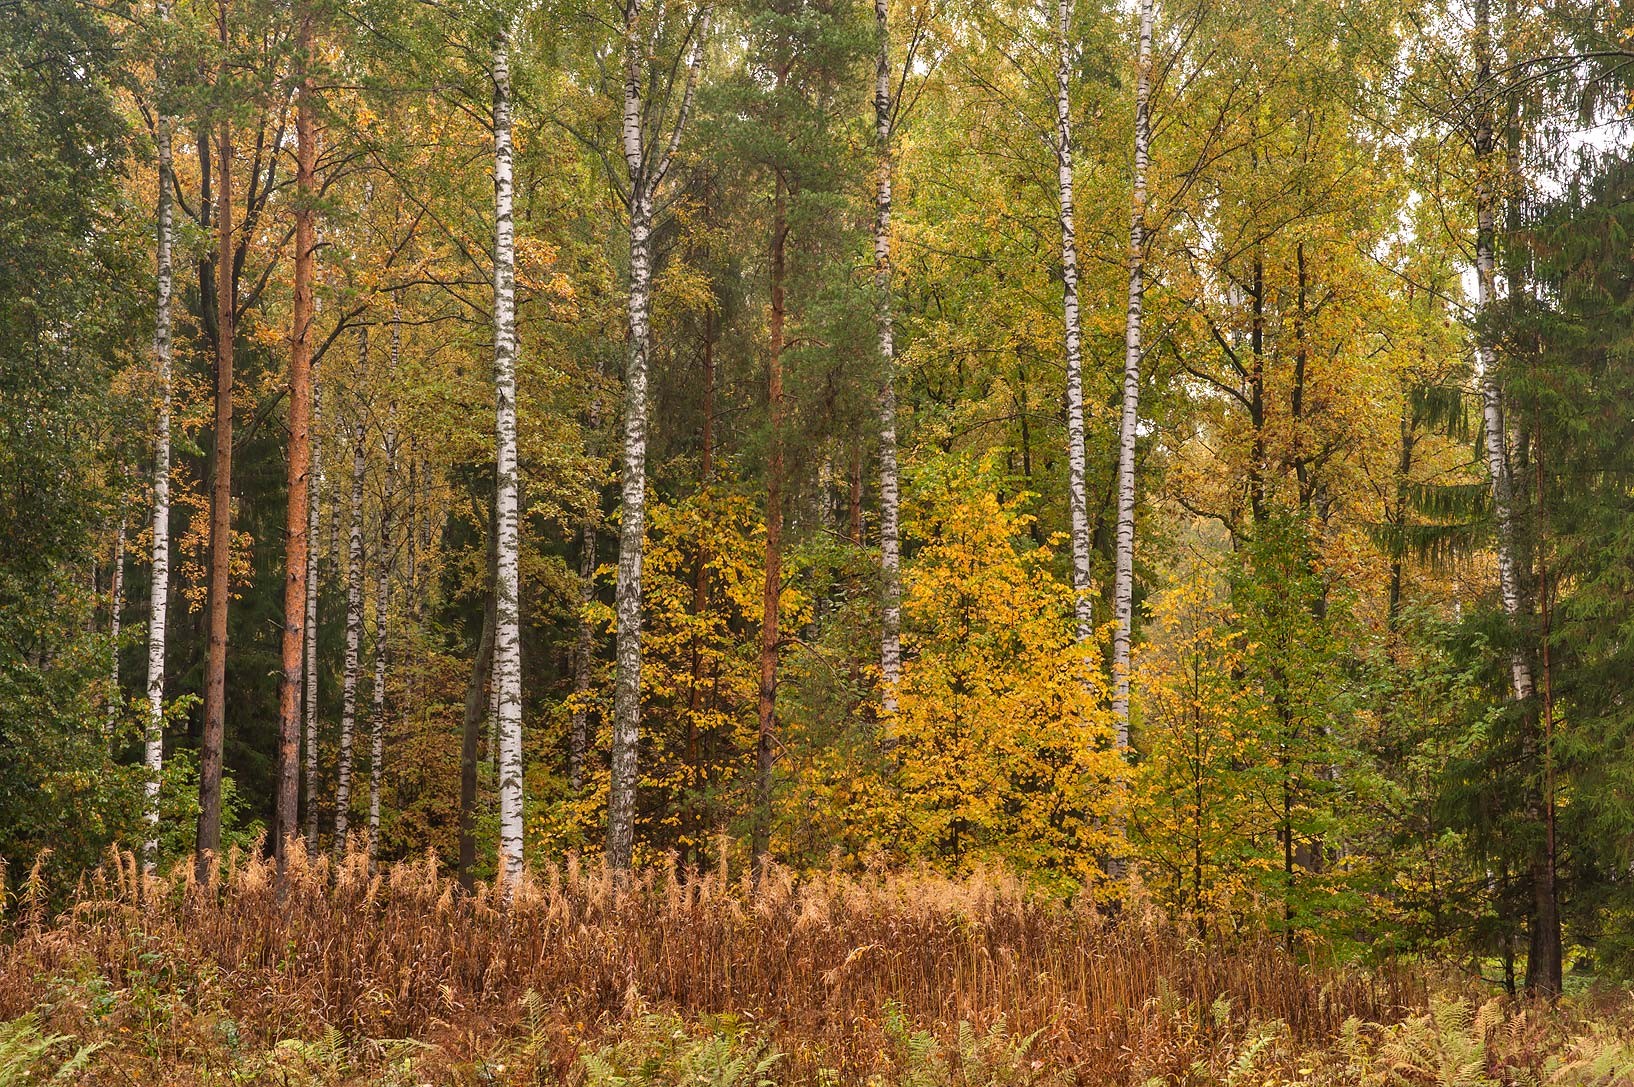 Forest near Zelionoy Zhenshchiny (Green Woman...suburb of St.Petersburg, Russia